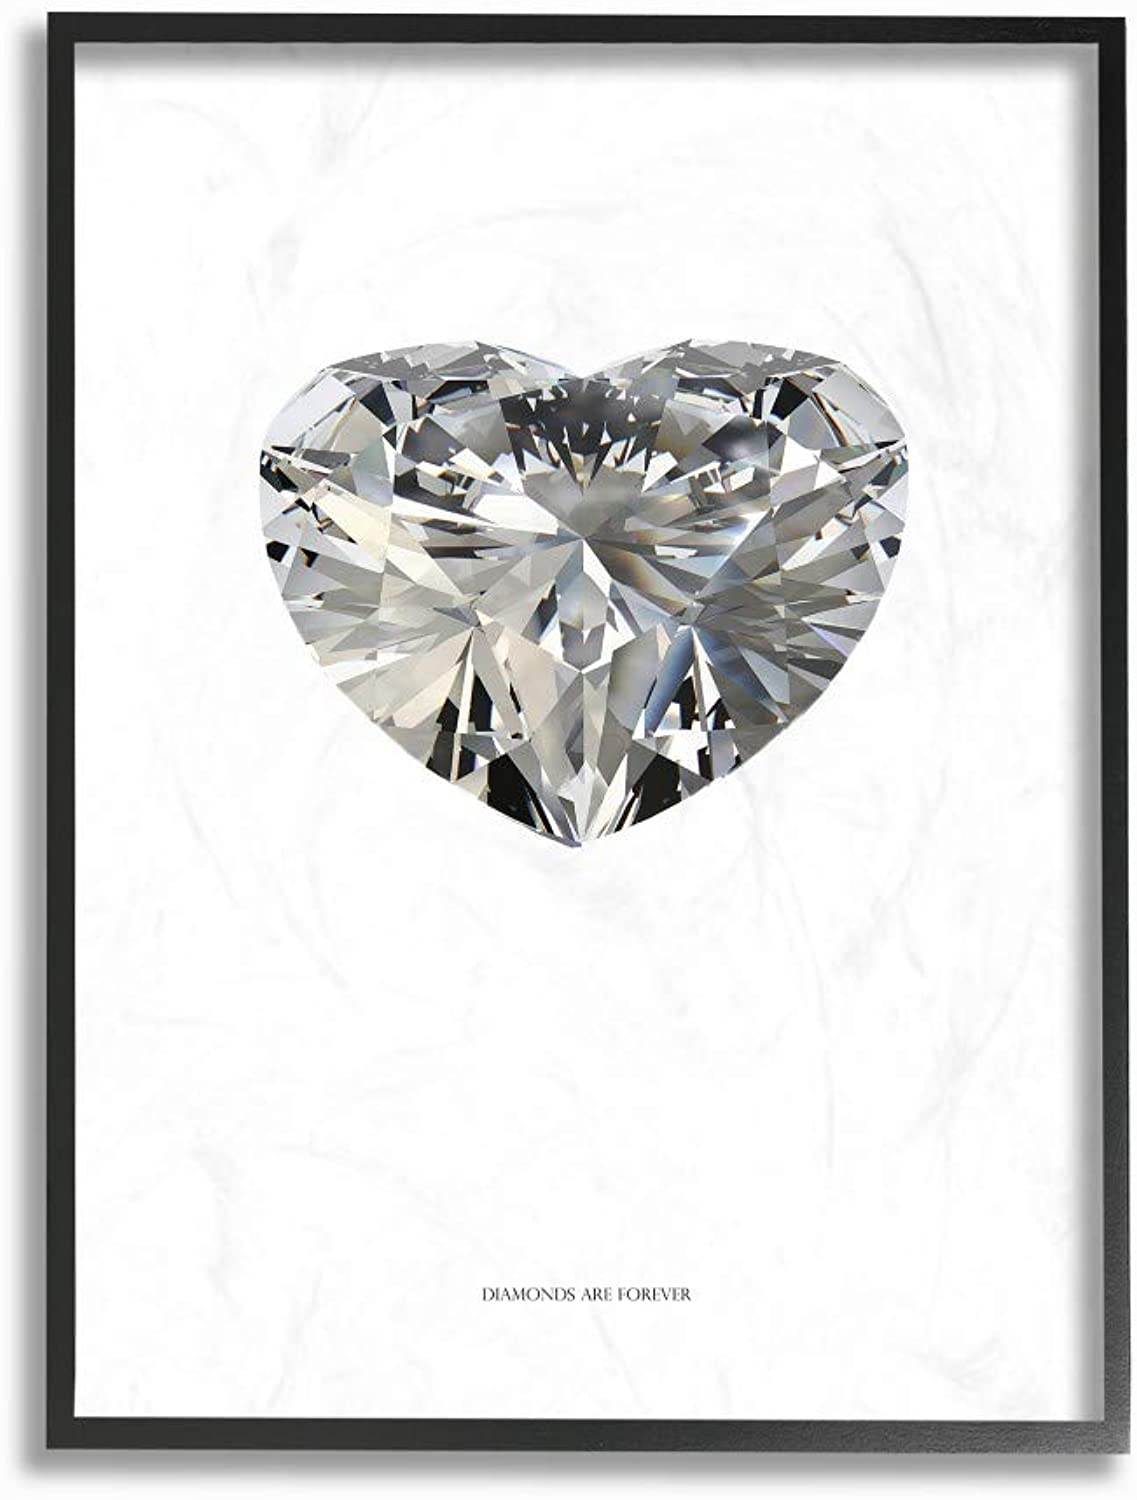 The Stupell Home Decor Collection Diamonds are Forever Minimal Framed Giclee Art, 16x20, Multicolor